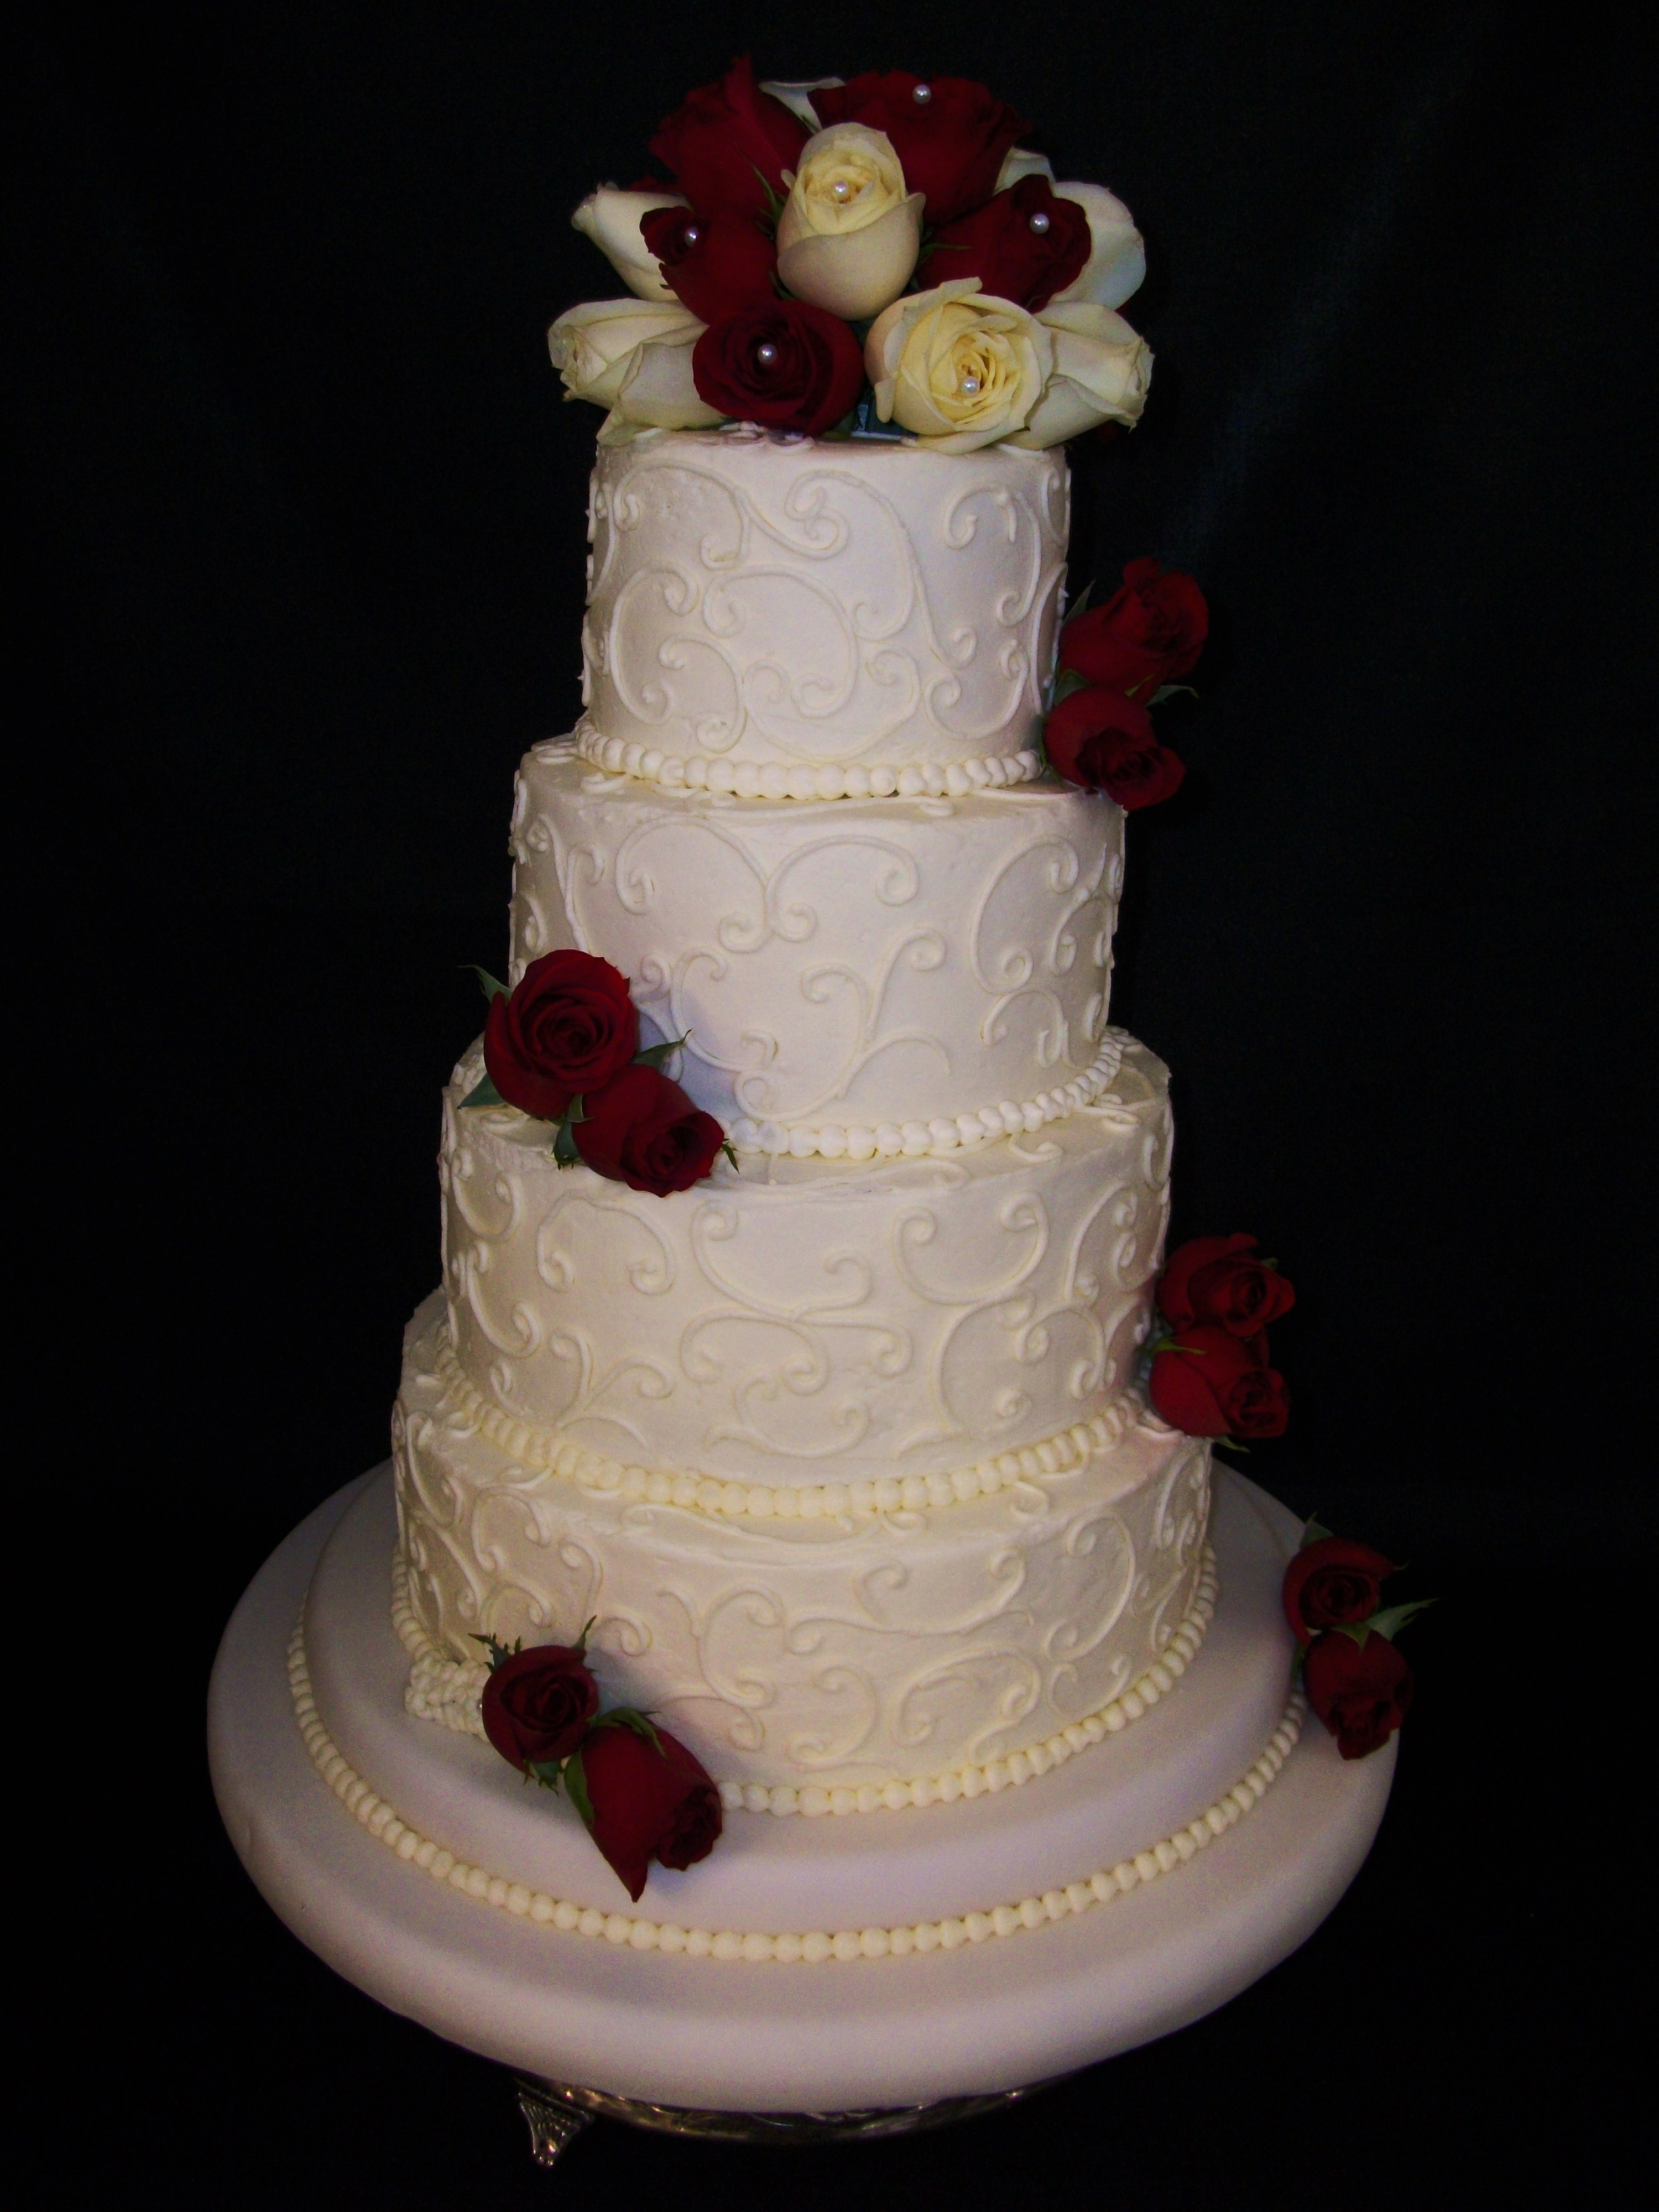 Wedding Cakes Tiered  Wedding Cake 4 Tier Buttercream Fresh Red and White Roses